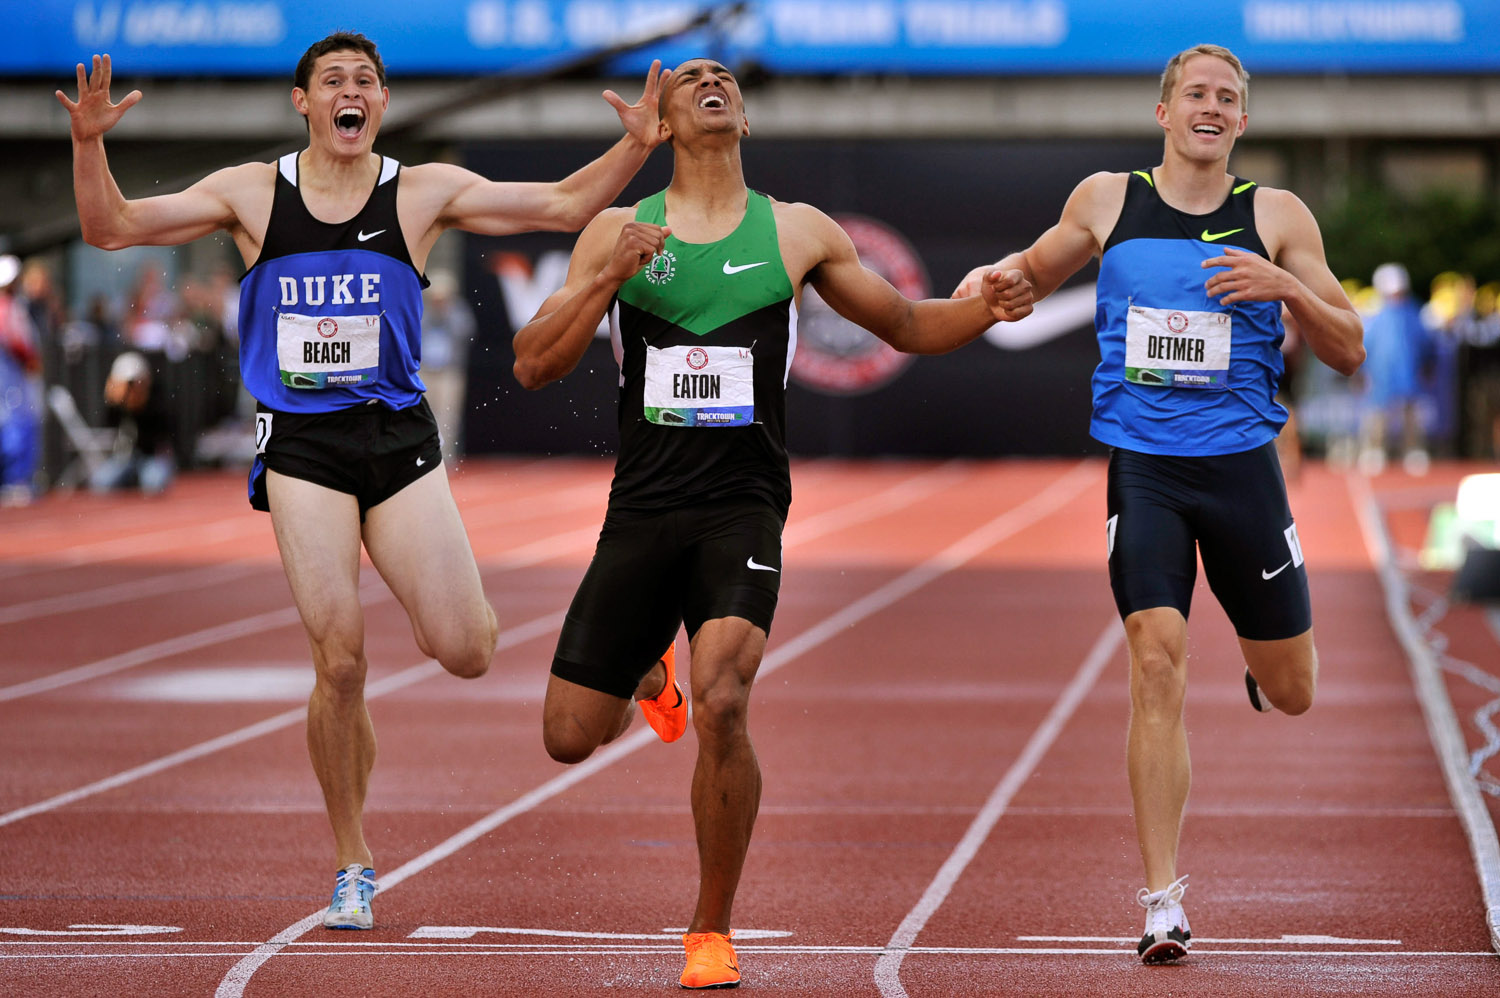 Ashton Eaton, flanked by Joe Detmer, right and Curtis Beach, hits the finish line at 4 minutes, 14.48 seconds in teh 1,500 meters to set a decathlon world record.